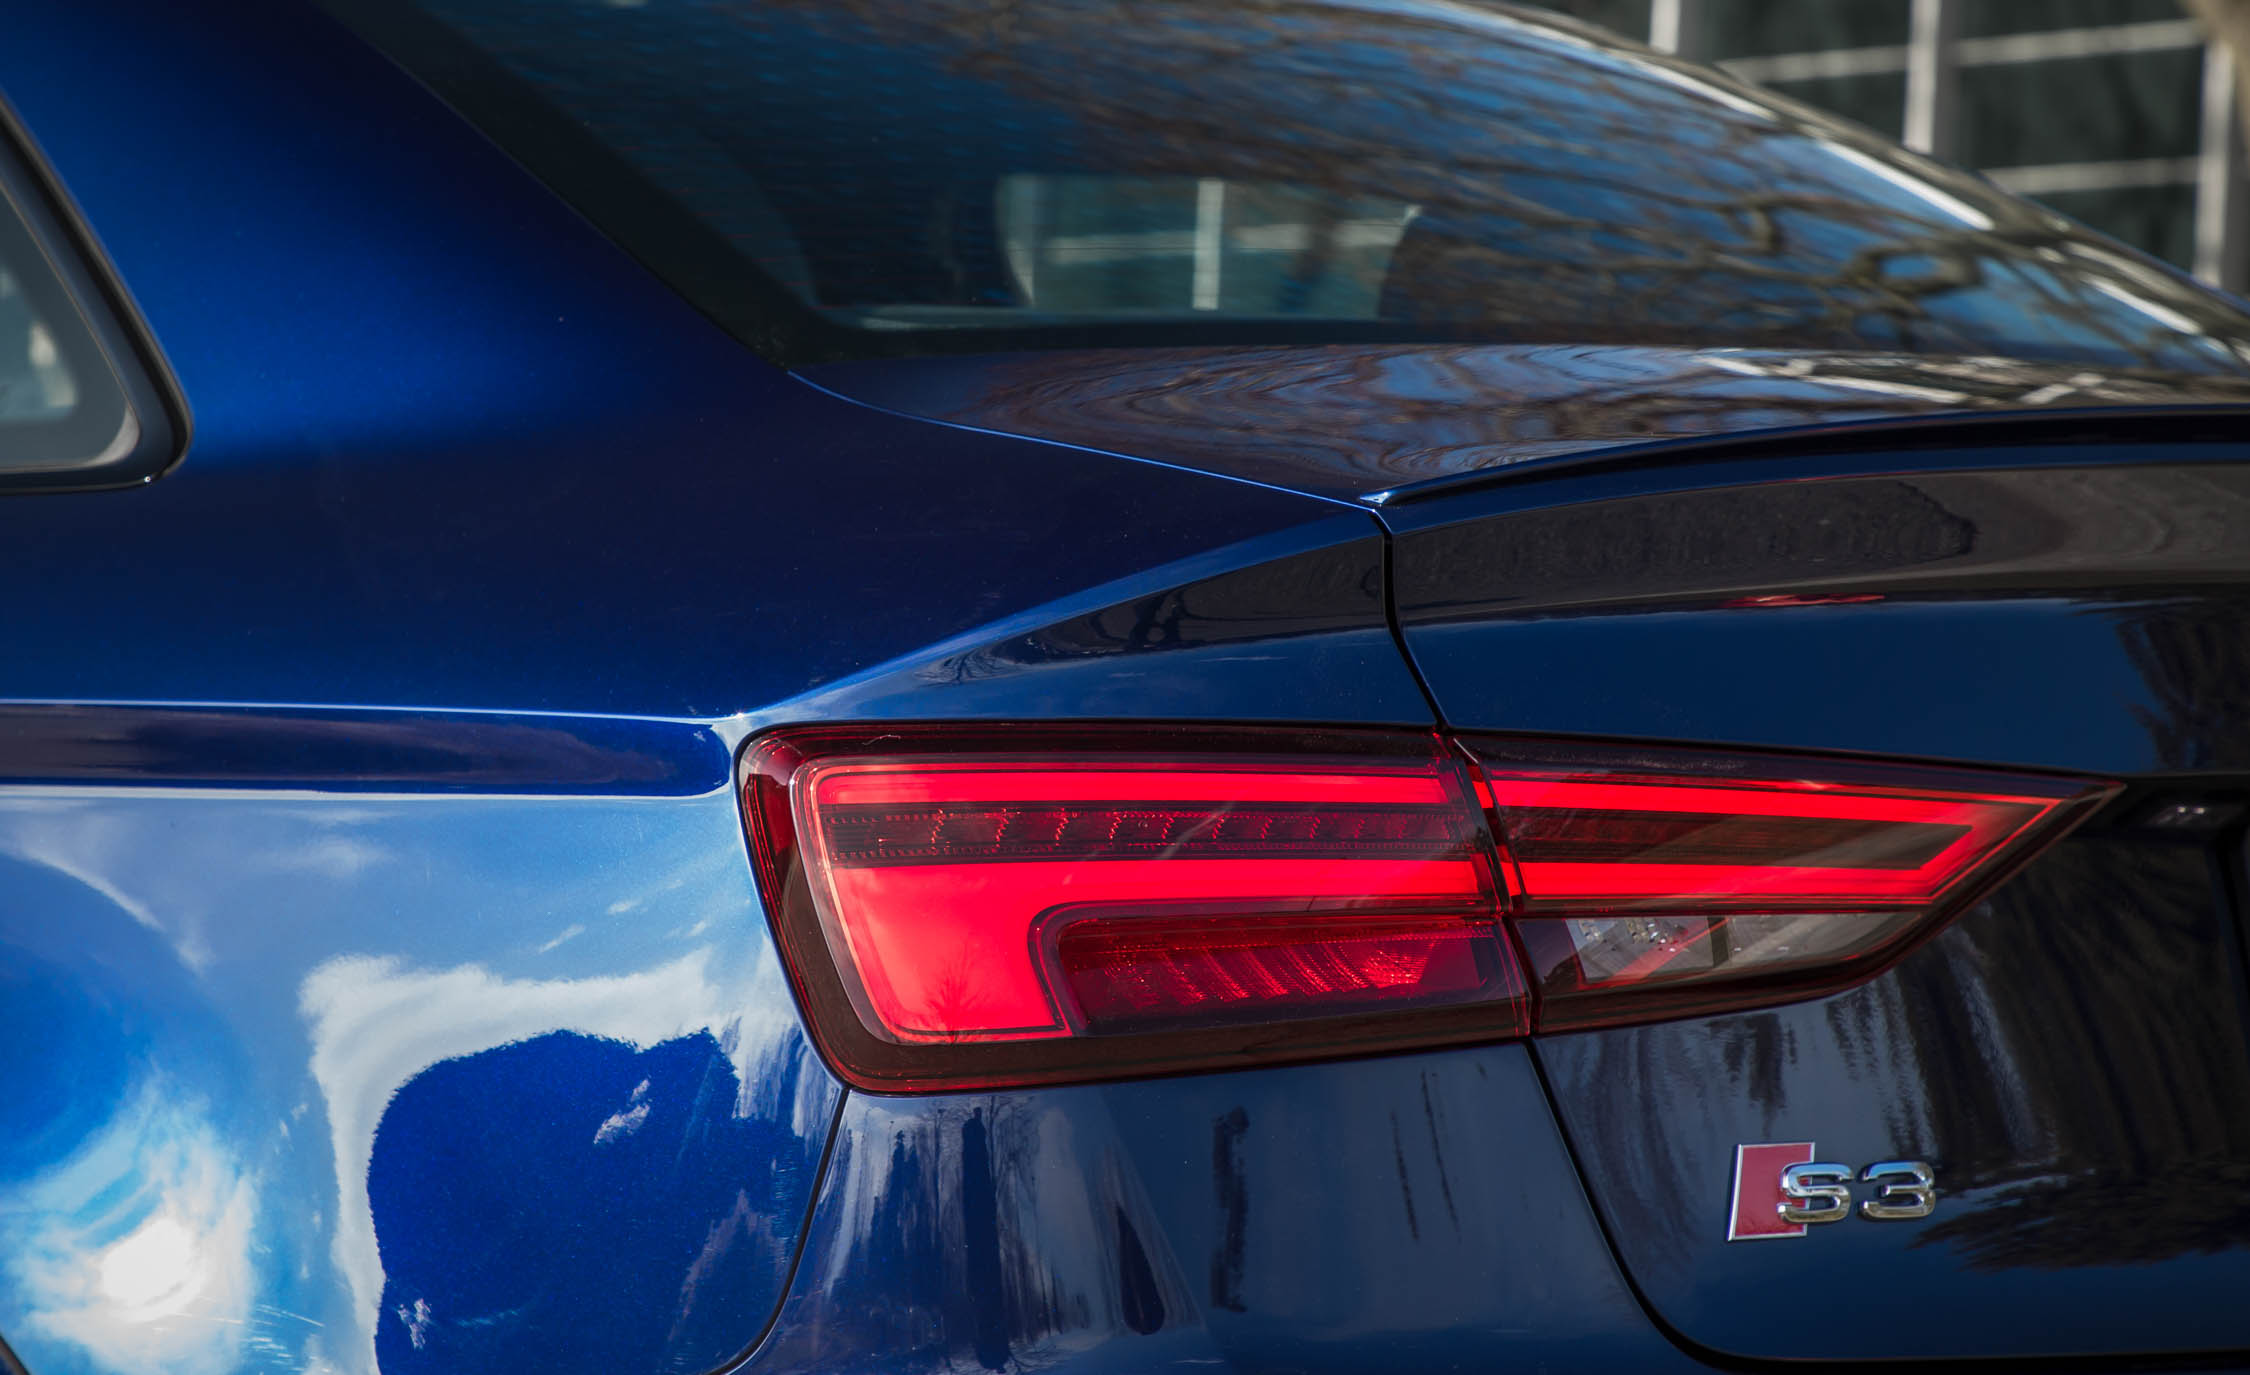 2017 Audi S3 Exterior View Taillight Left (Photo 42 of 50)